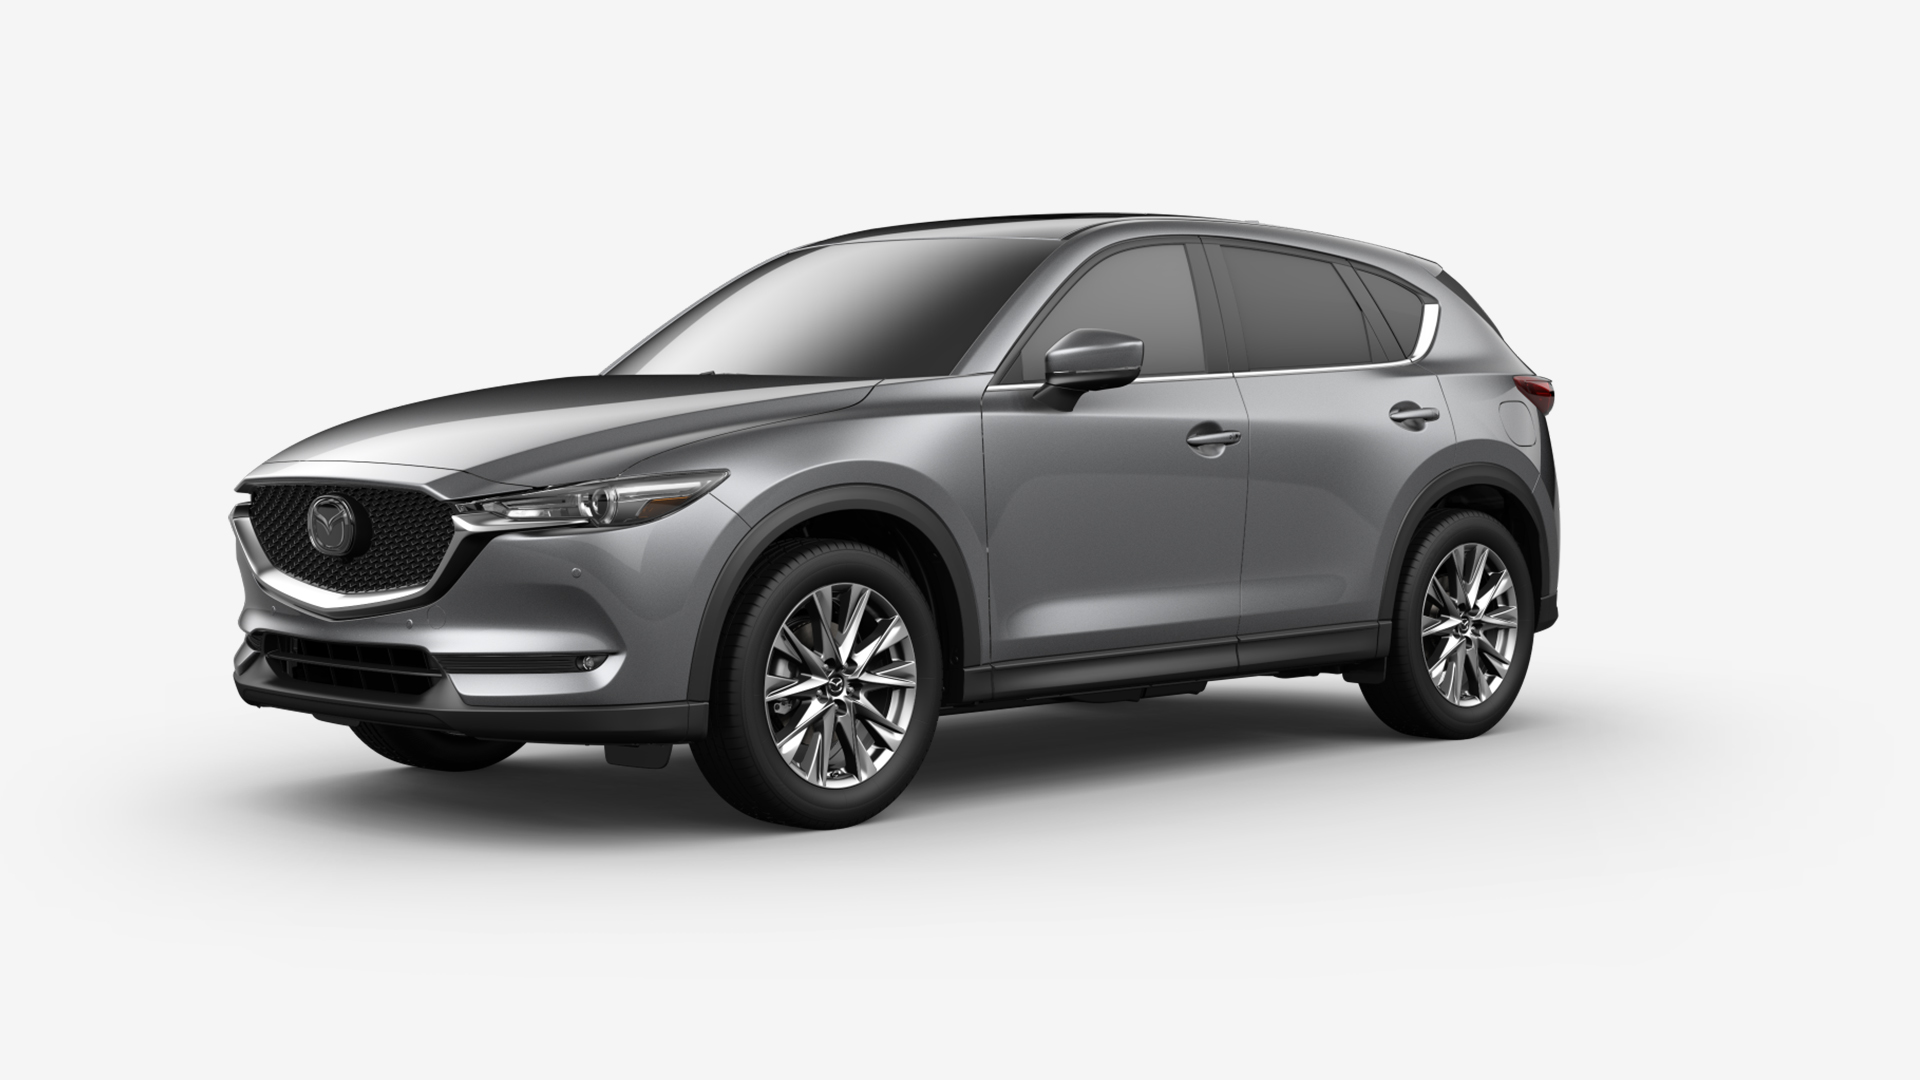 2019 Mazda CX-5 Crossover SUV - Fuel Efficient SUV | Mazda USA